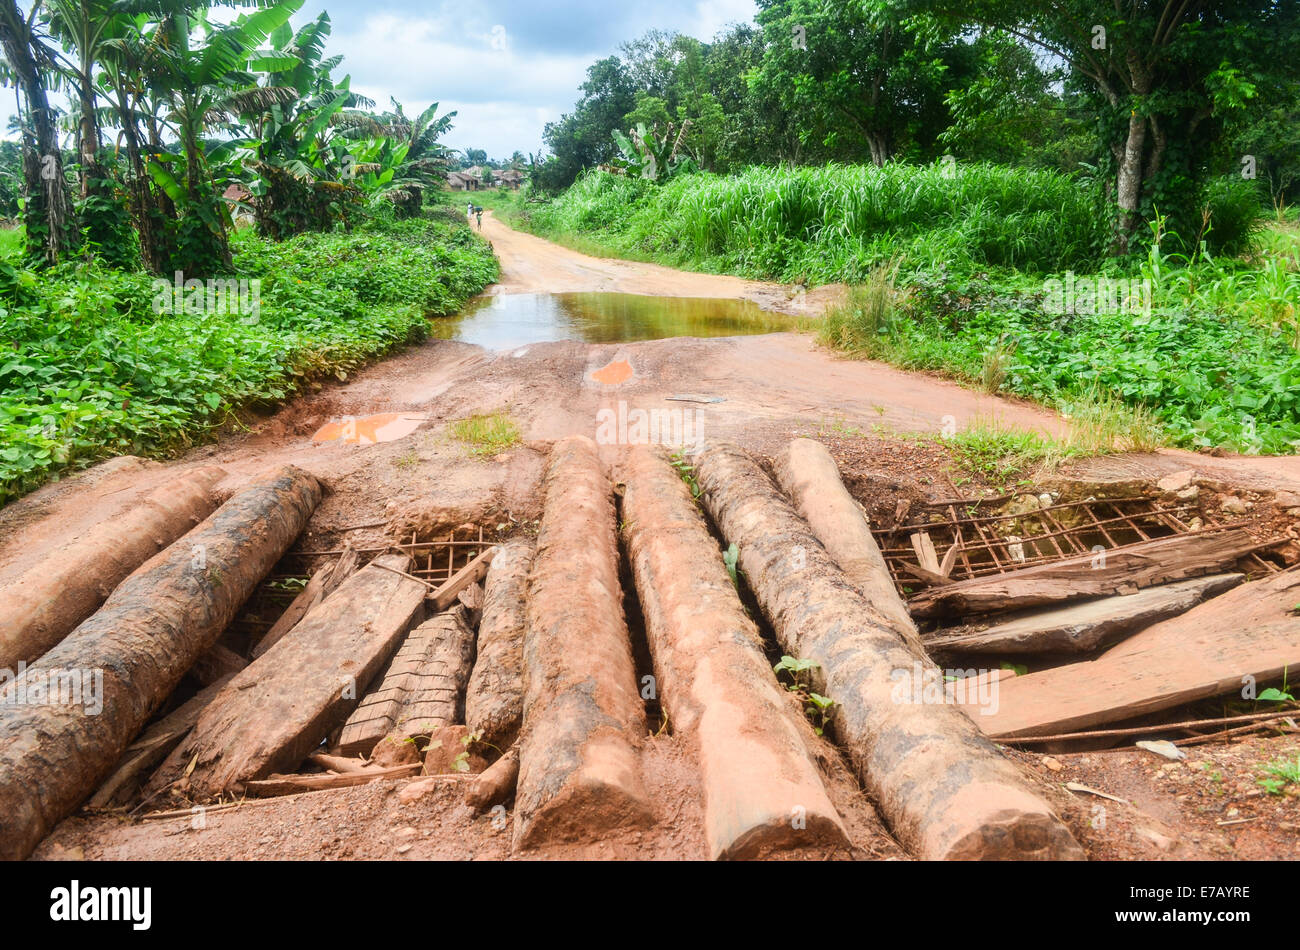 A makeshift bridge on the poor rural road network of Sierra Leone during the rainy season - Stock Image